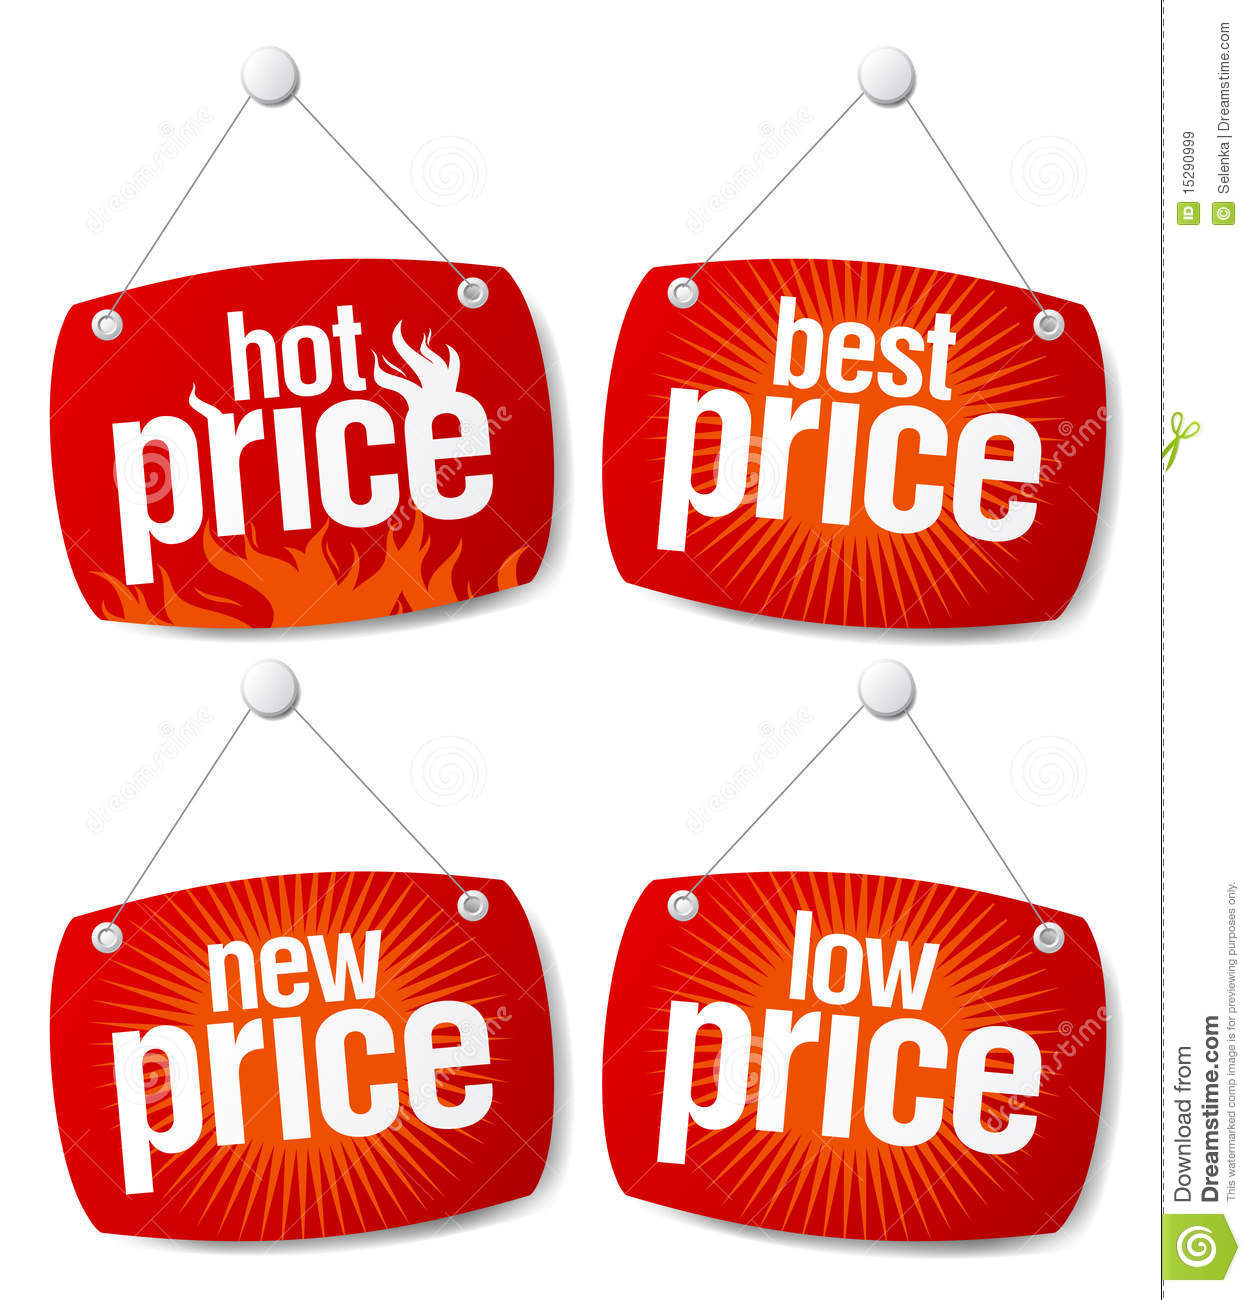 best price signs royalty free stock images image 15290999